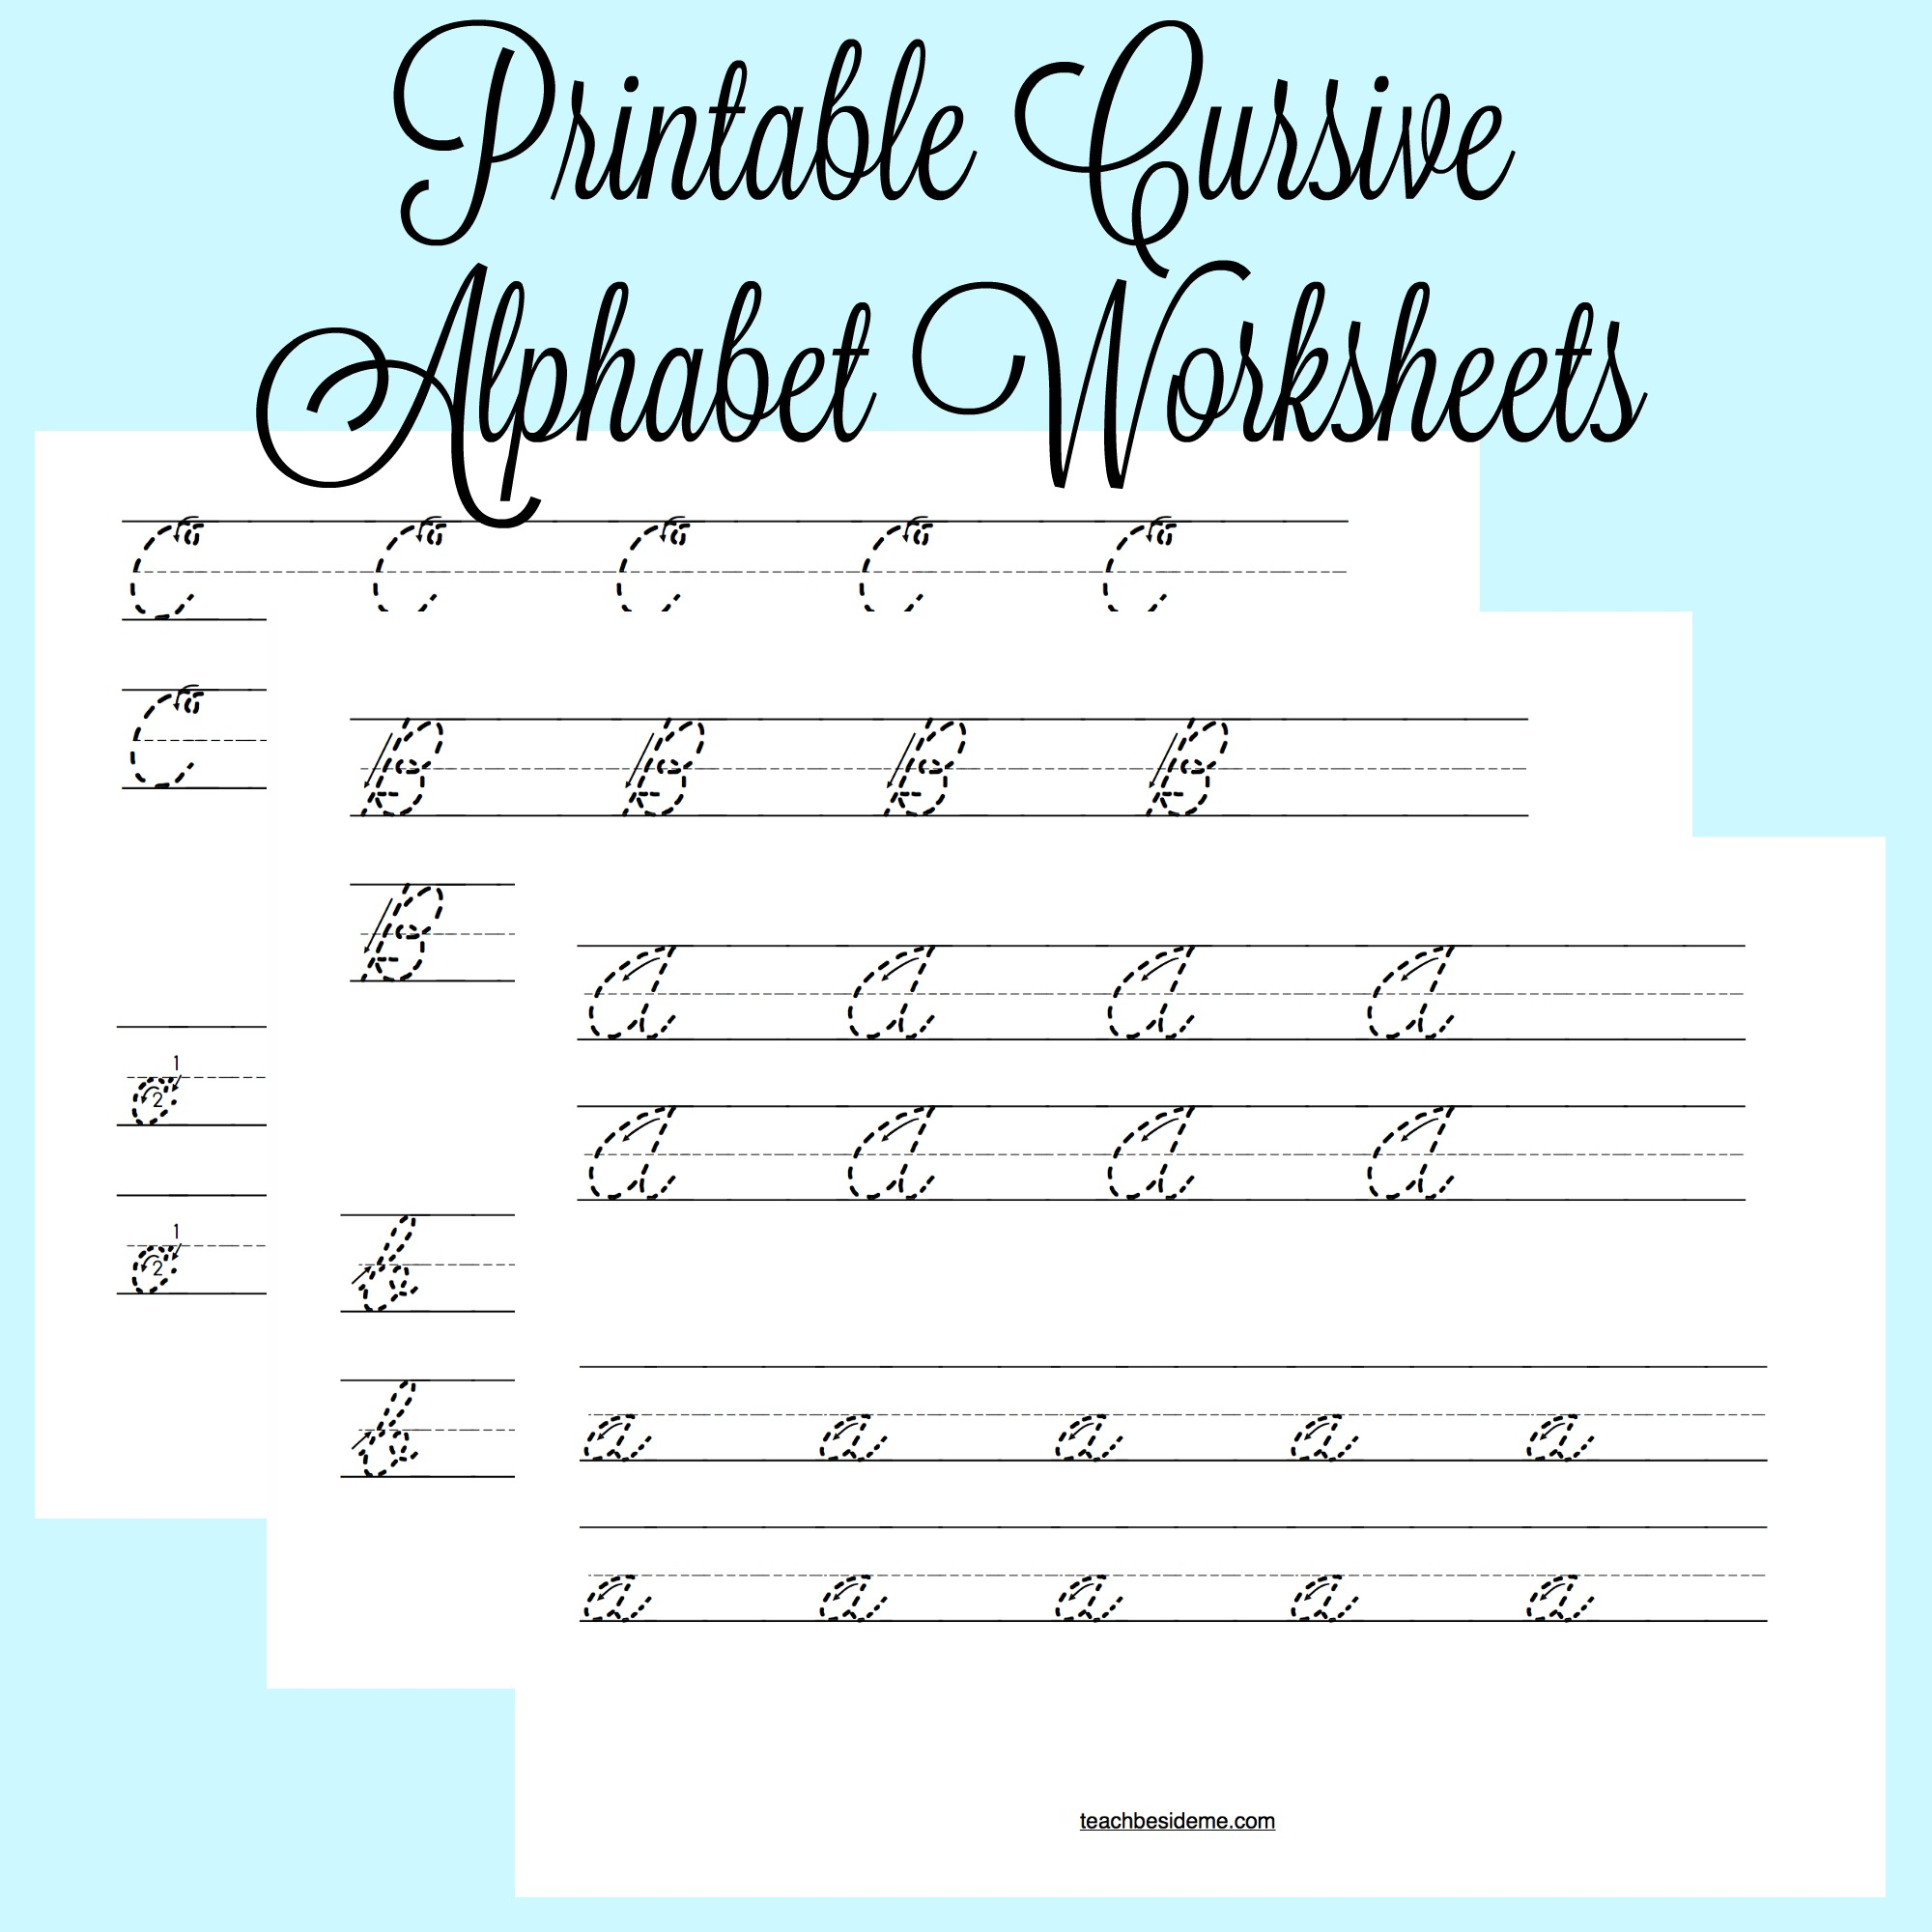 Printable Cursive Alphabet Worksheets – Teach Beside Me | Printable Cursive Worksheets